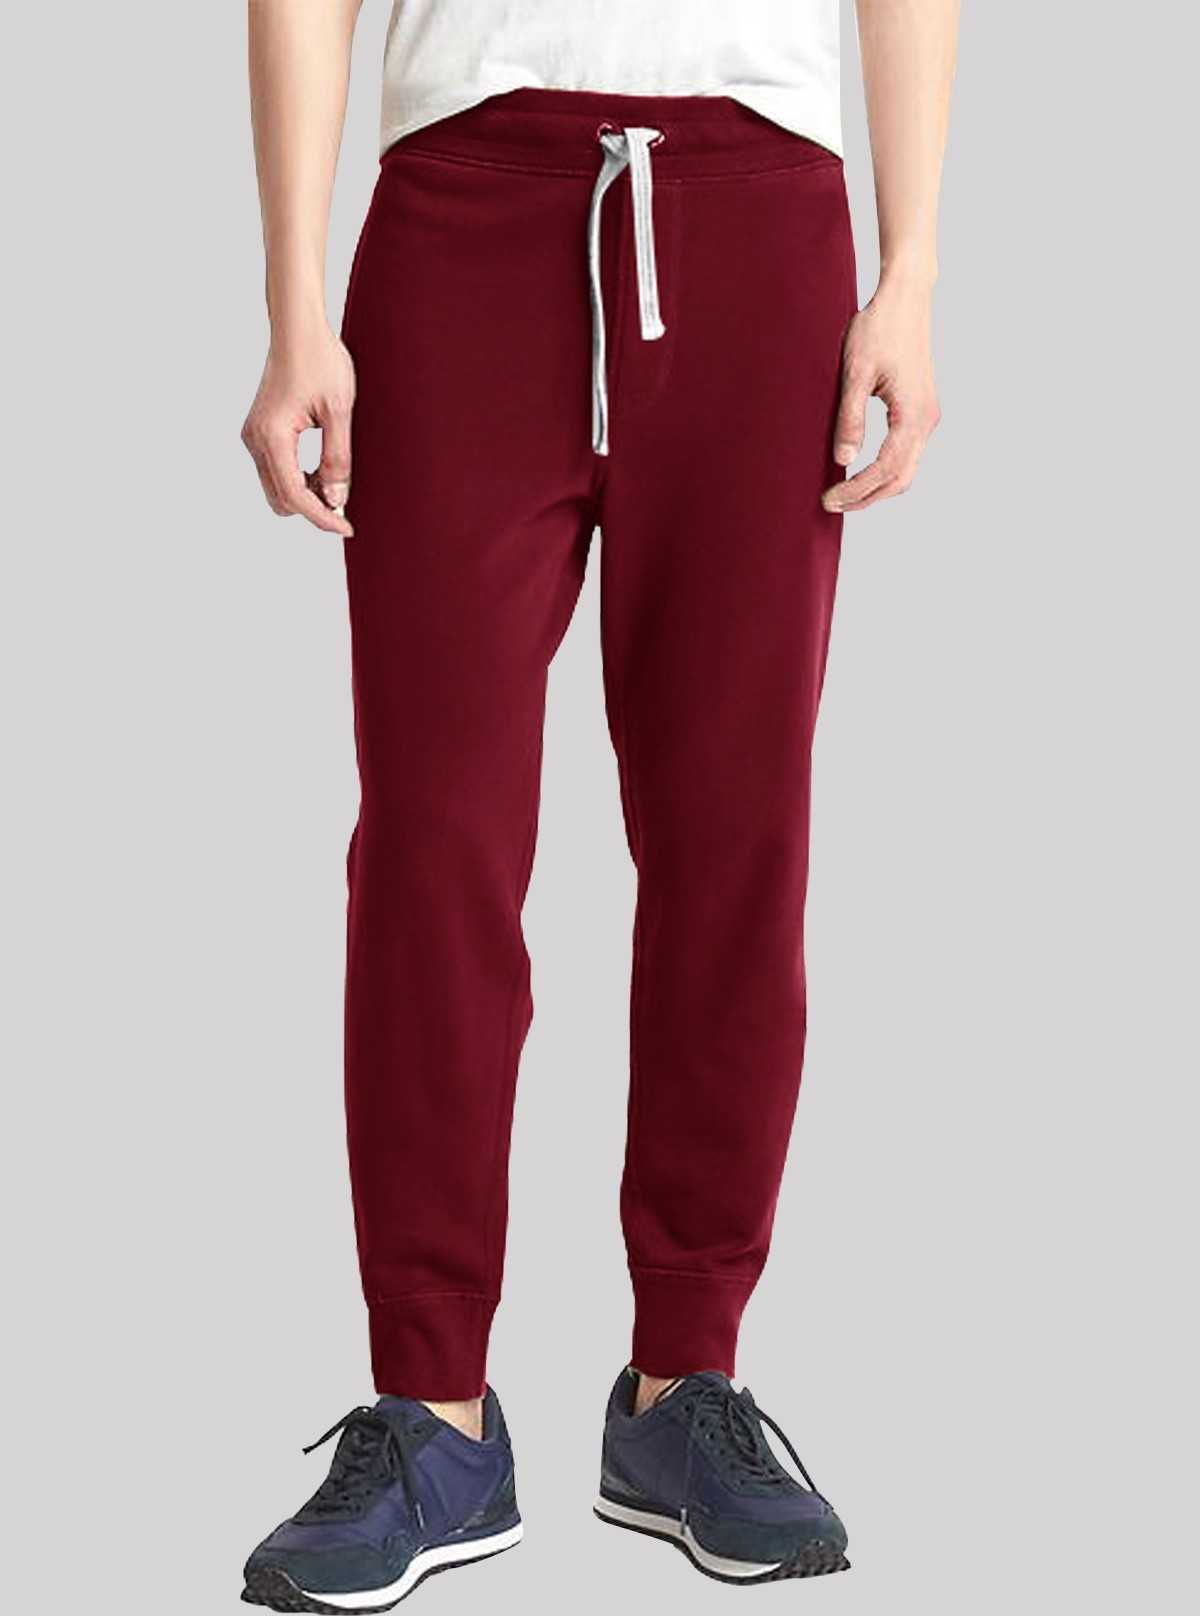 Burgundy Cuffed Jogger Boer and Fitch - 1